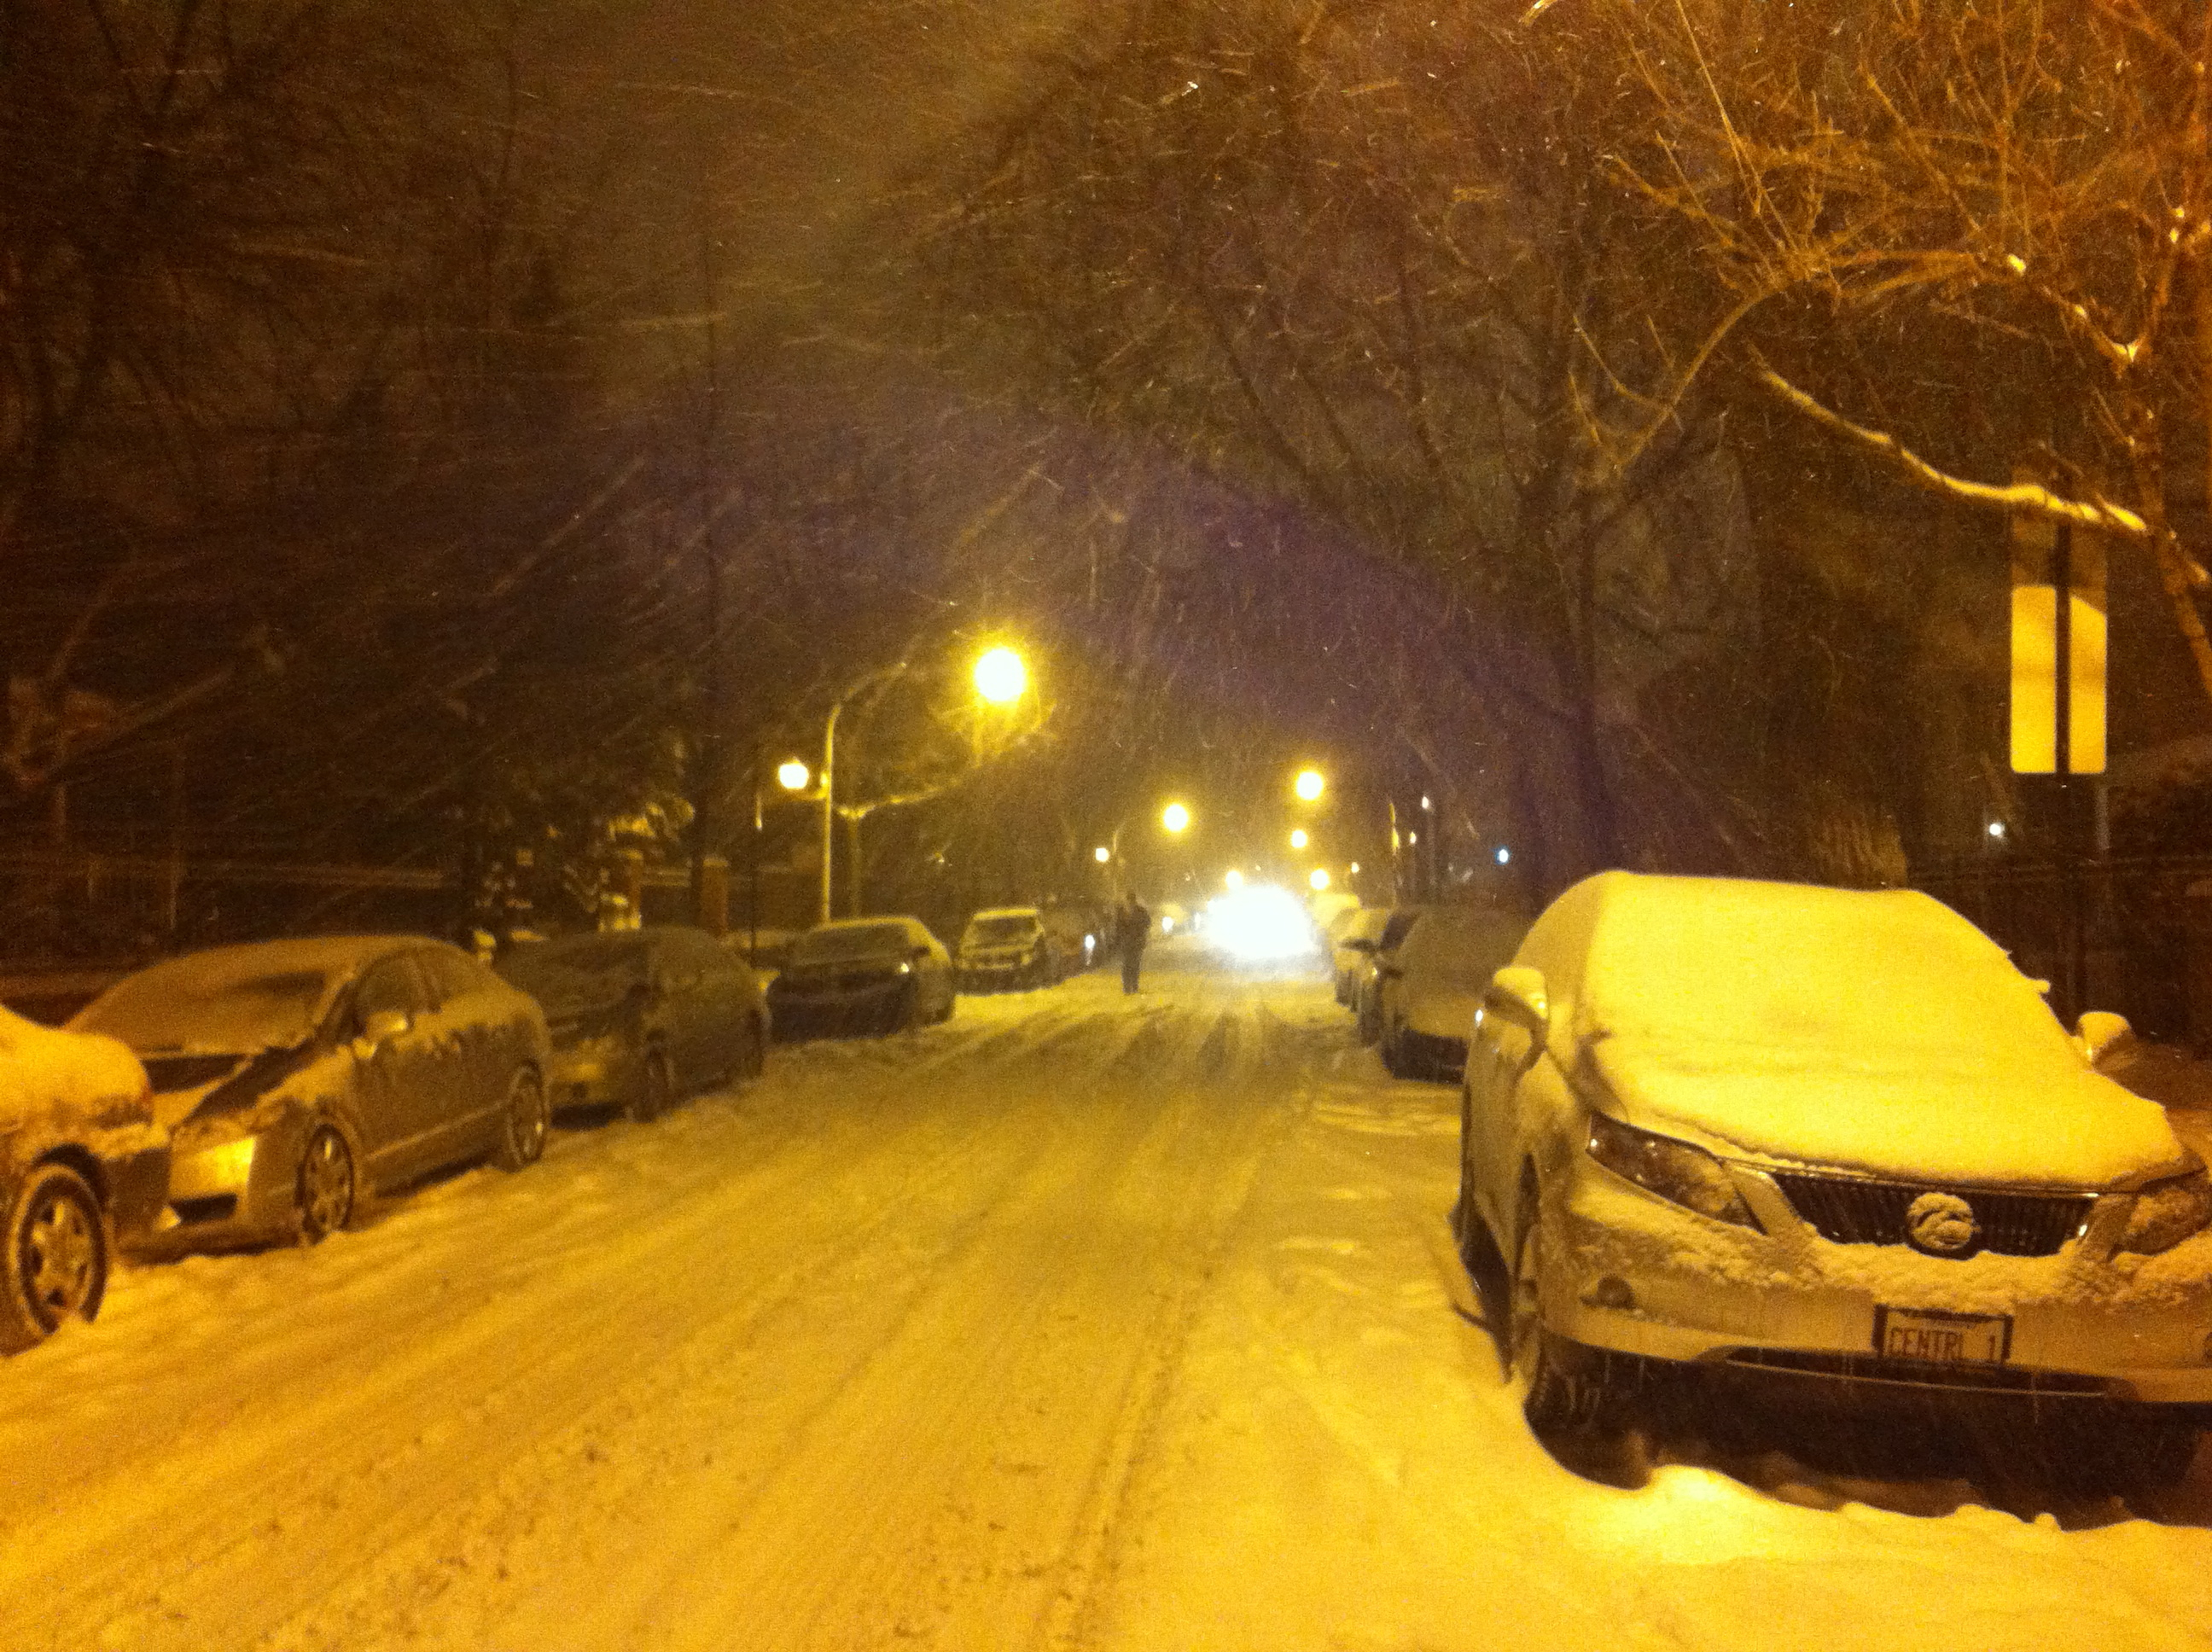 My street, snowed over